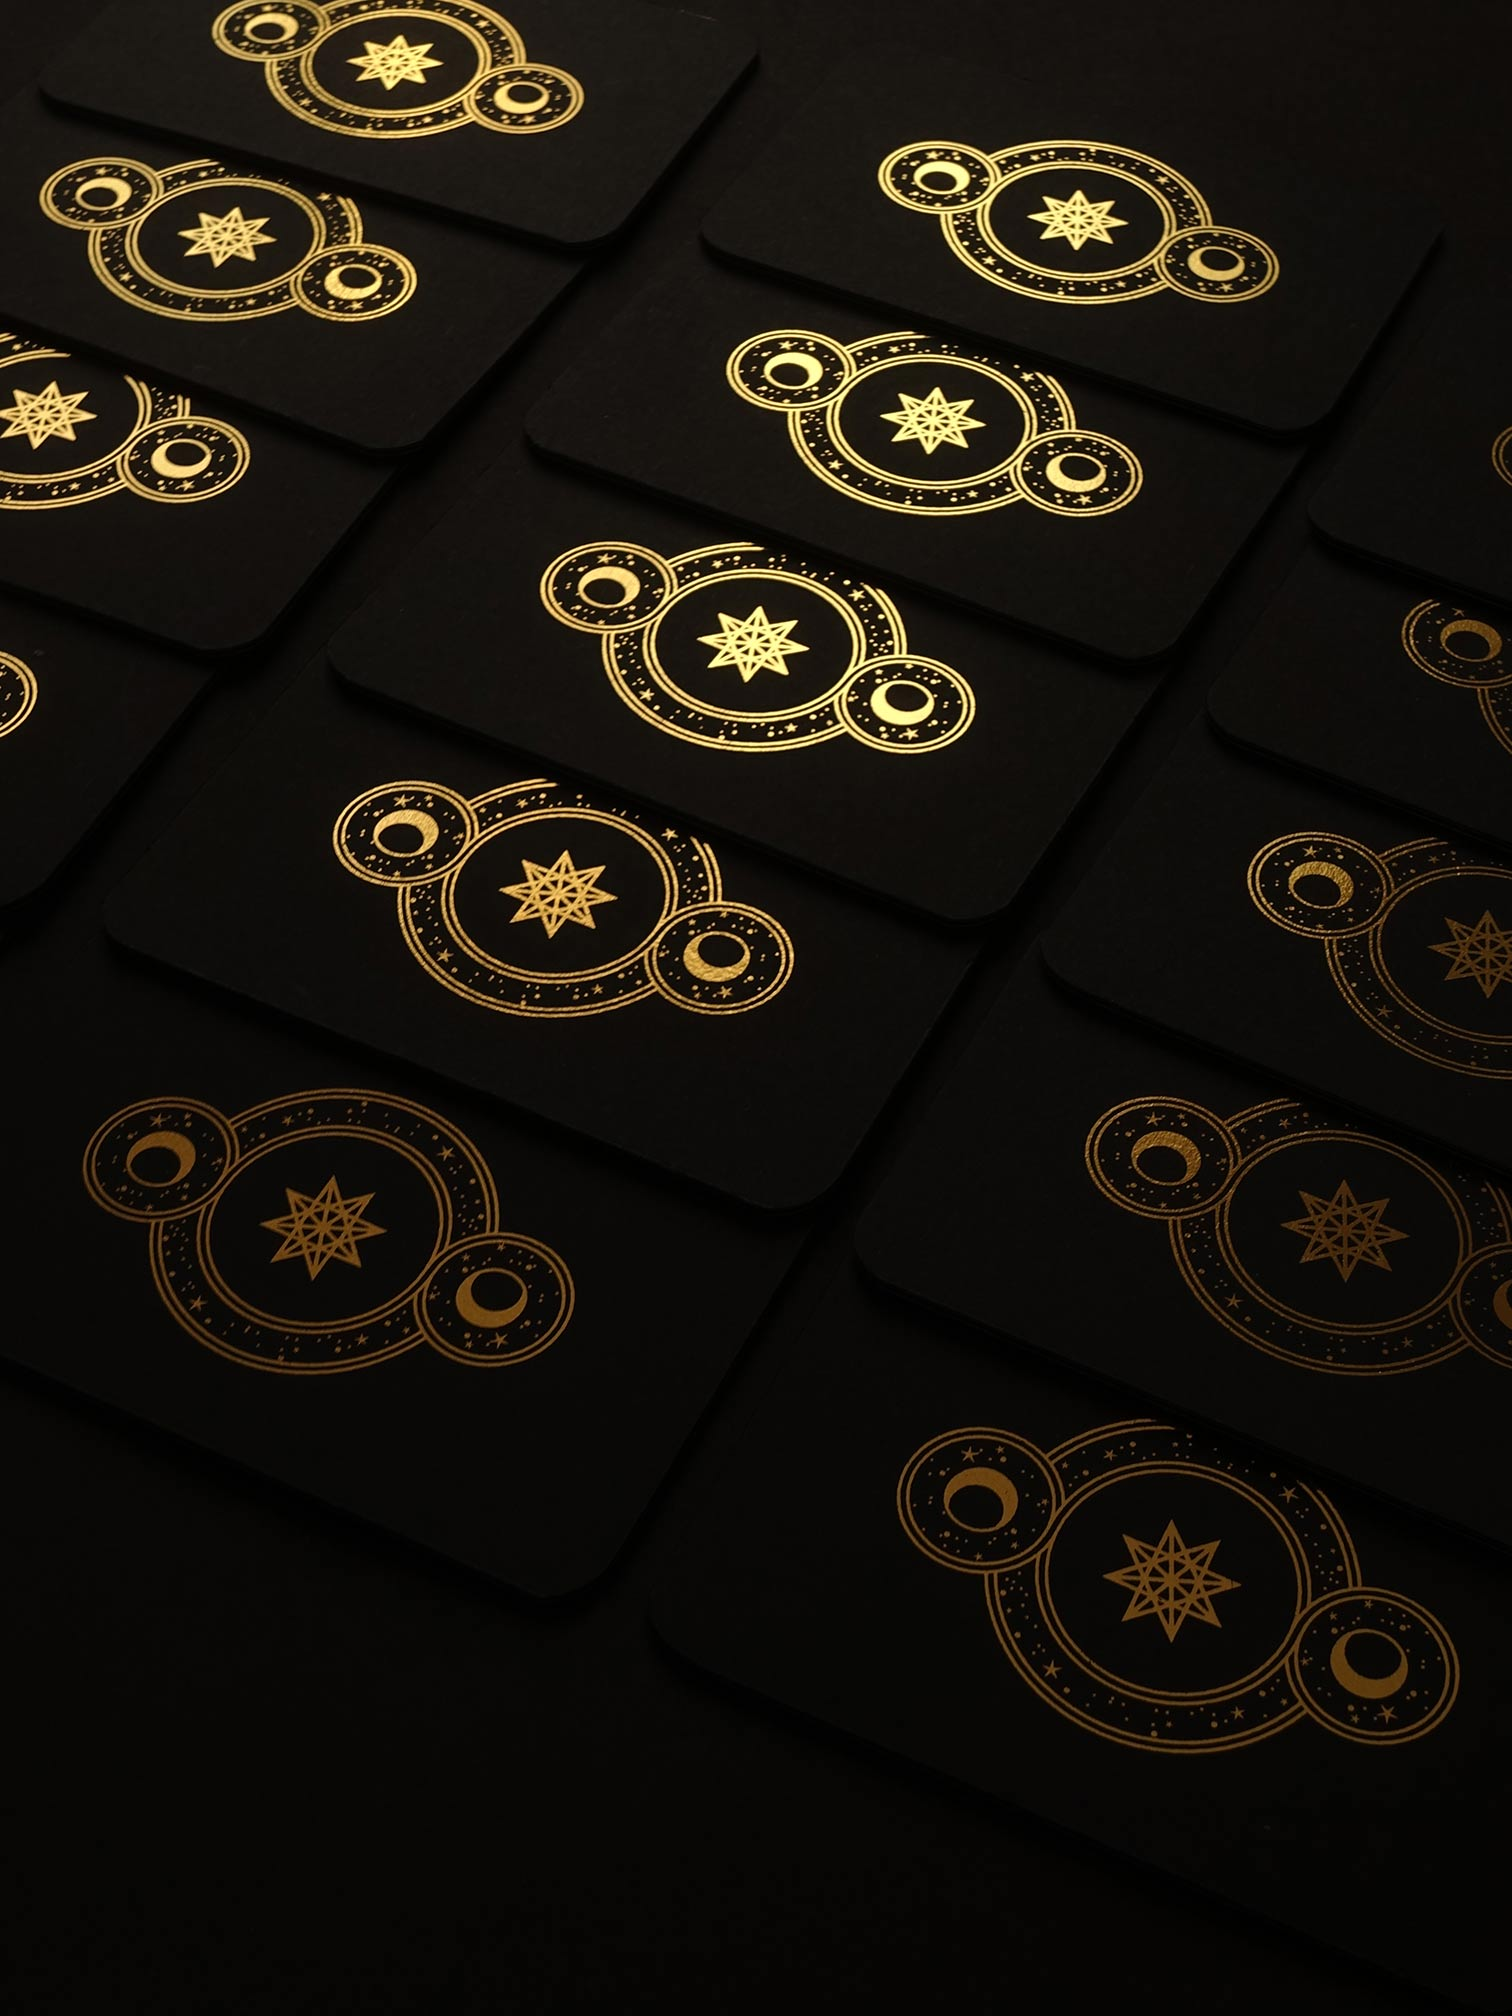 Cosmic Whisper rune deck by Cocorrina & Co in black and gold foil